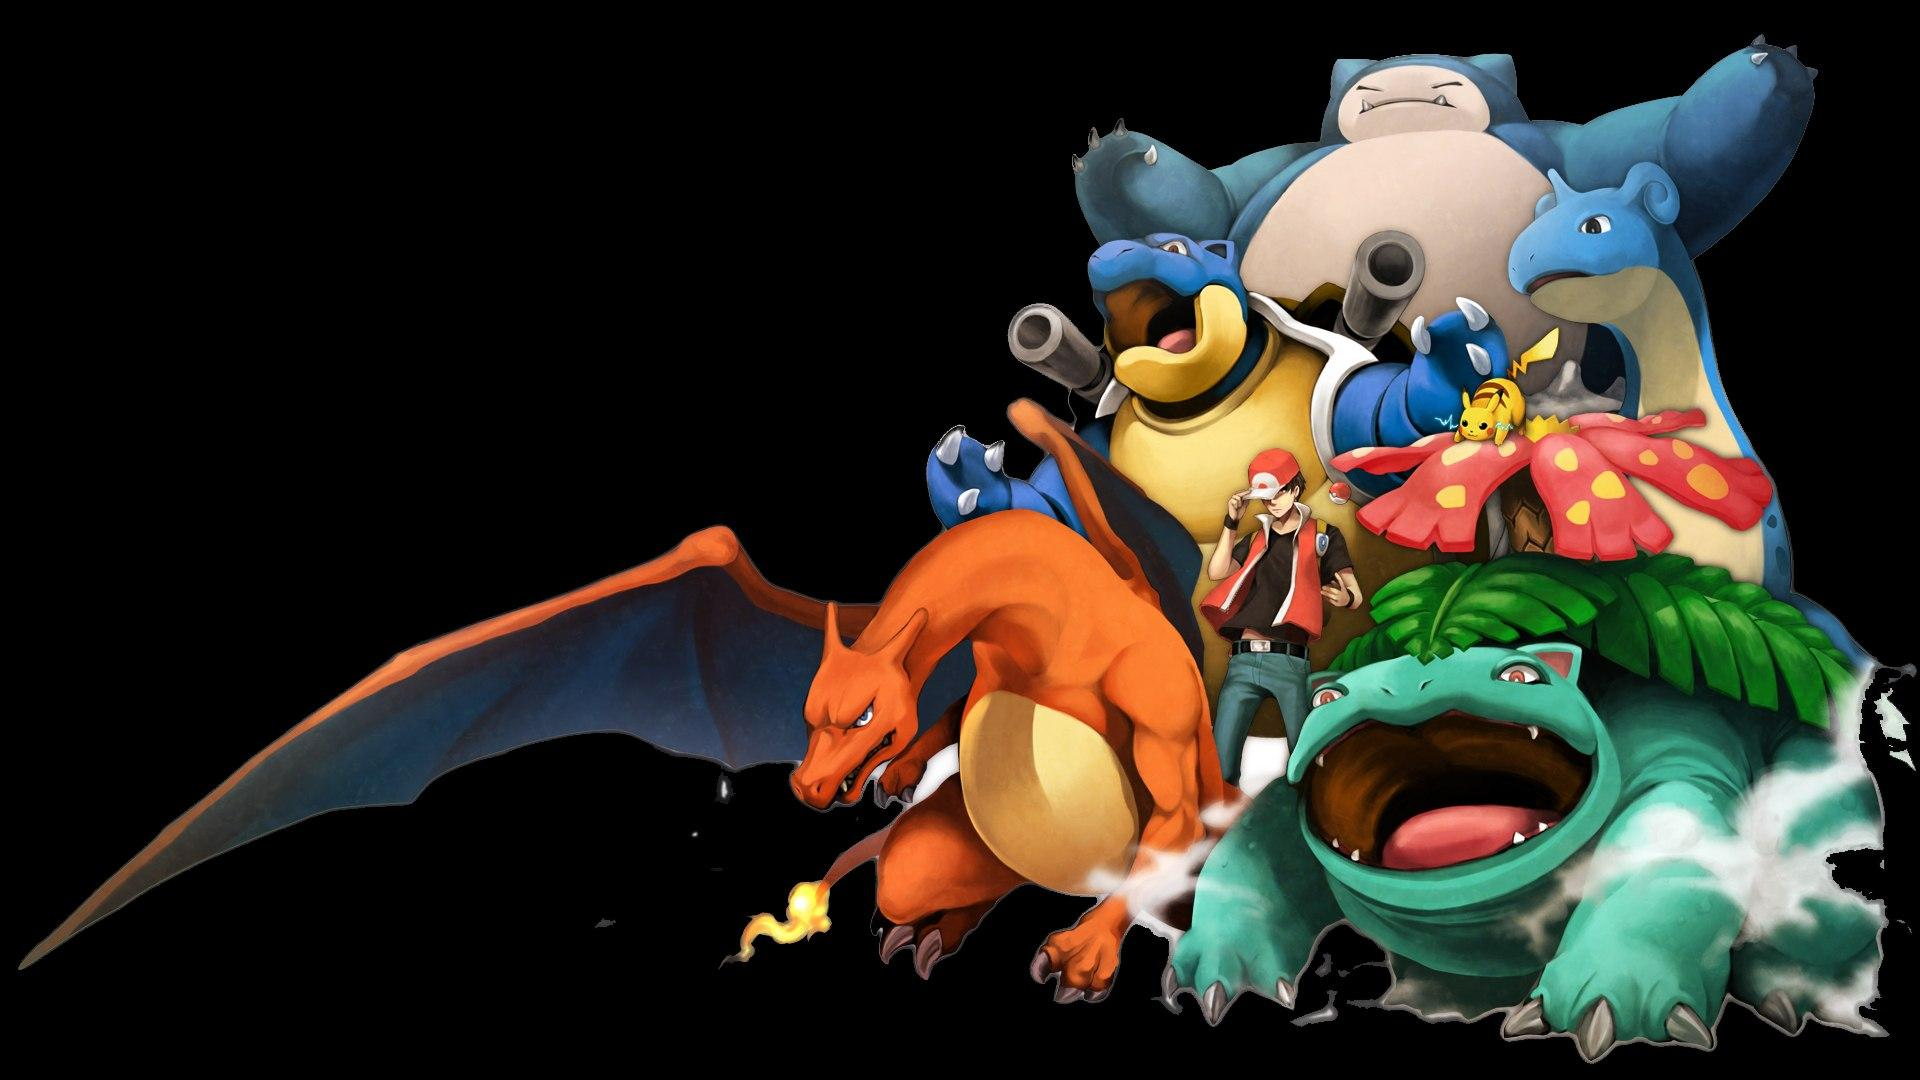 Pokemon wallpaper 1920x1080   34805   High Quality and Resolution 1920x1080